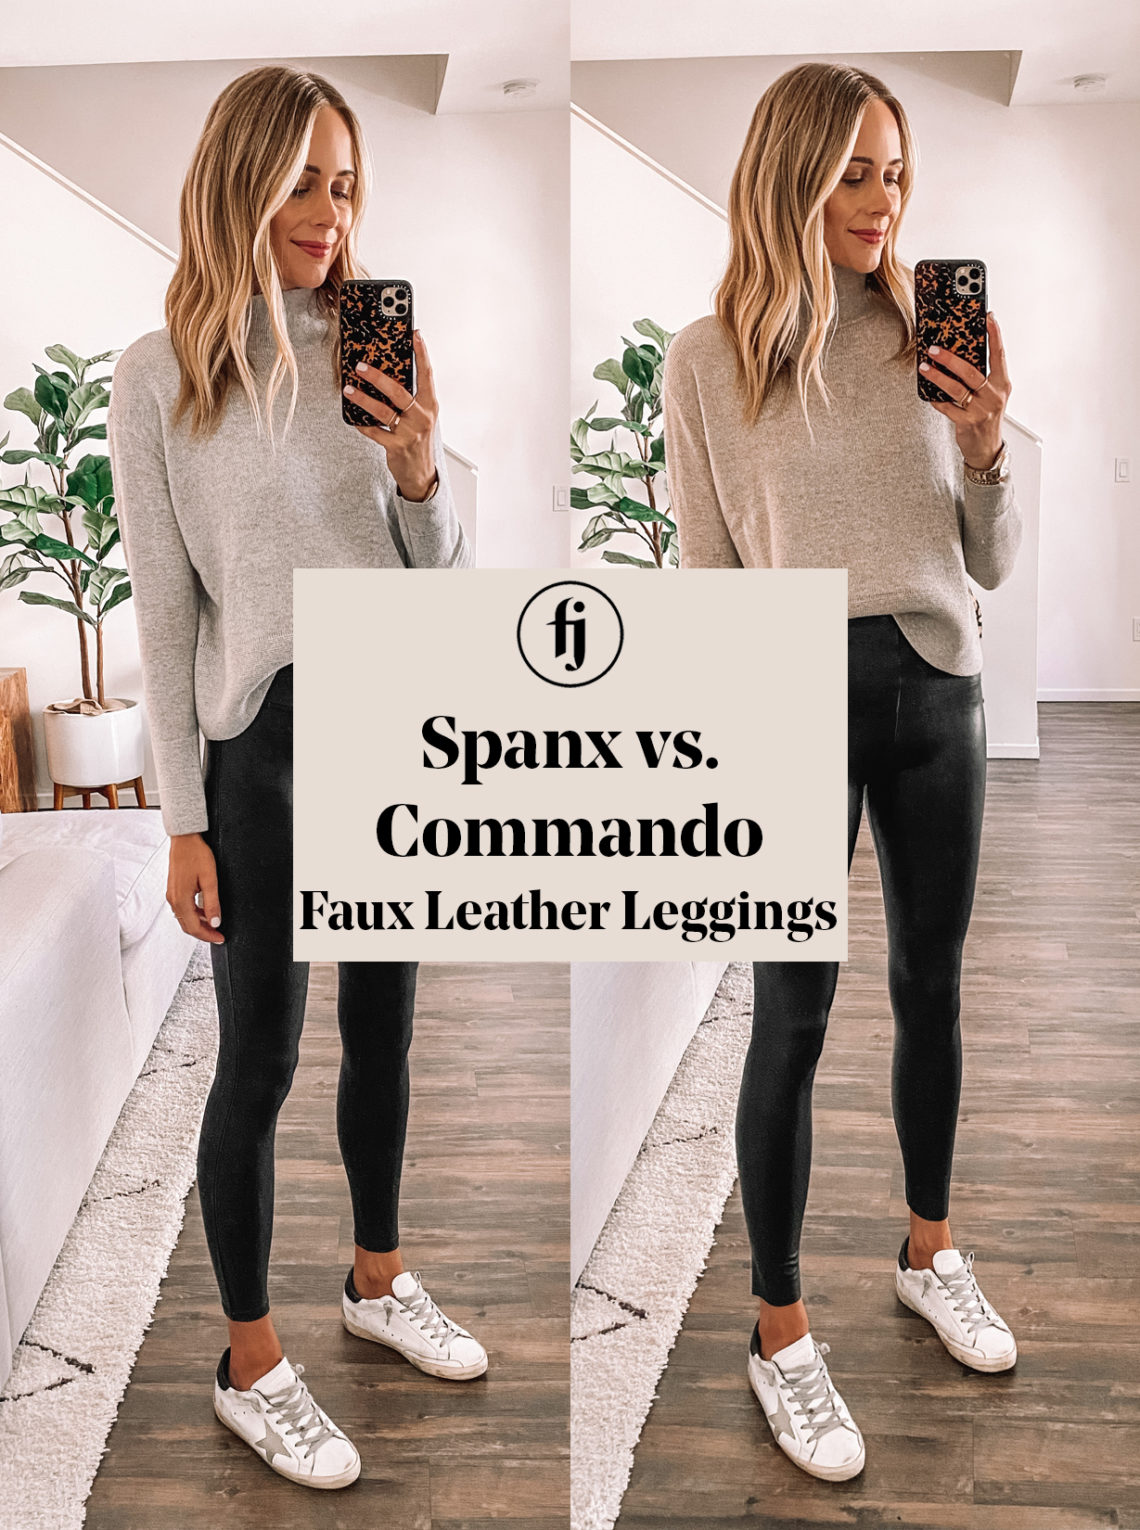 Spanx vs Commando Faux Leather Leggings